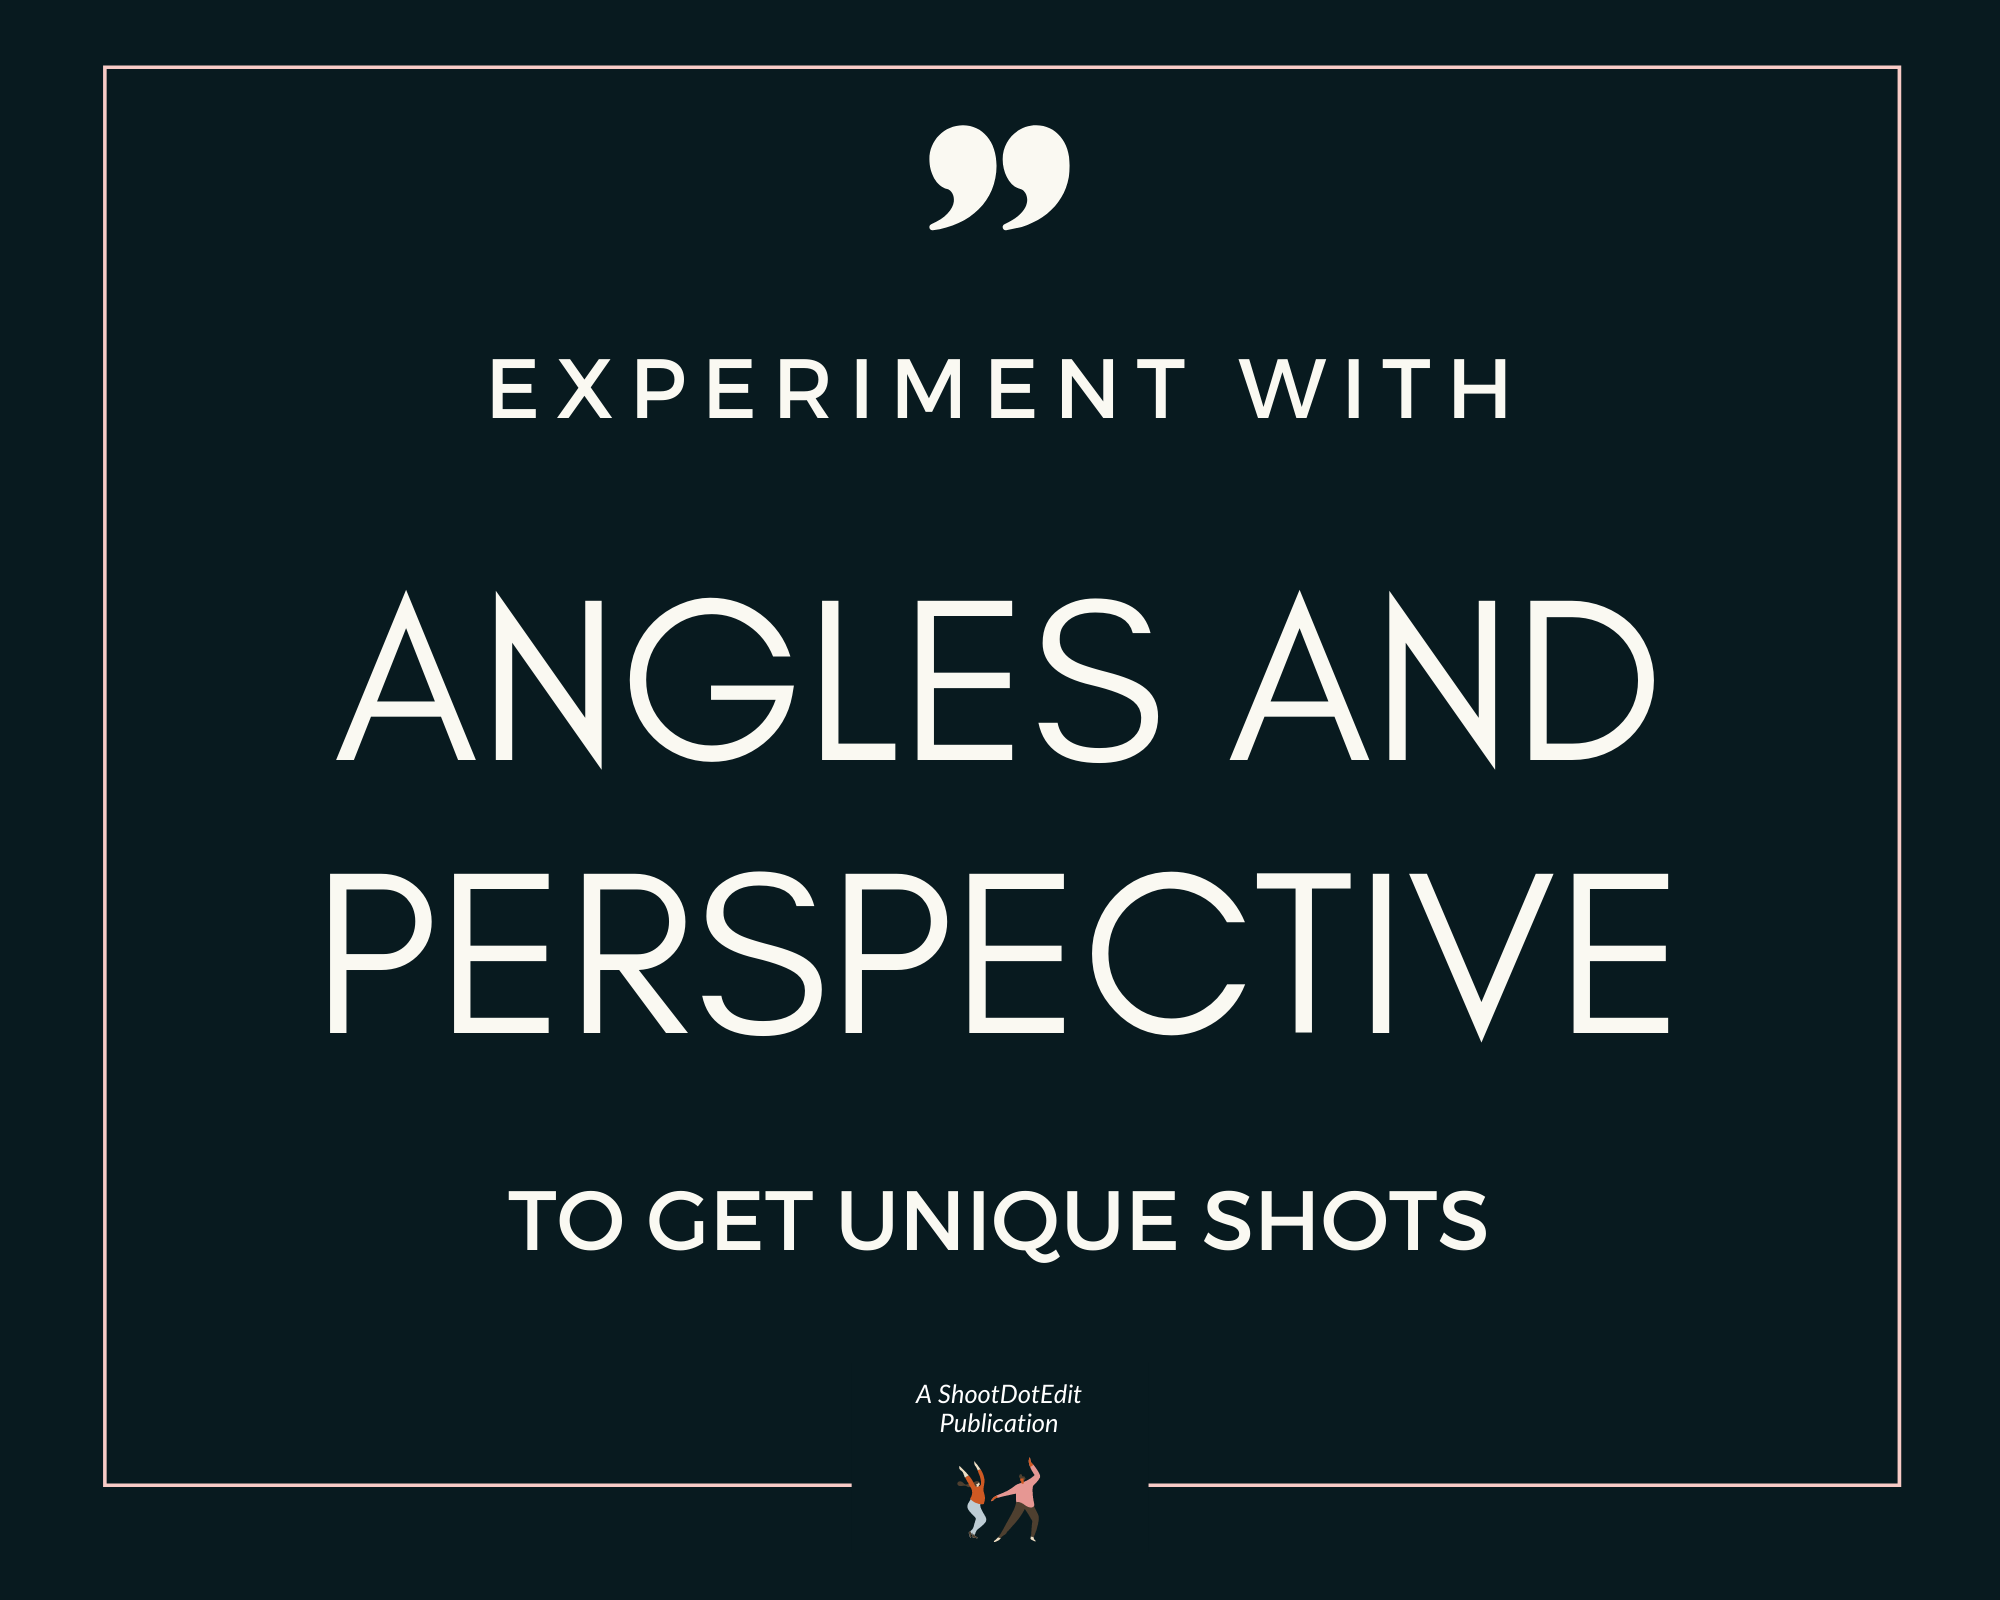 Infographic stating experiment with angles and perspective to get unique shots